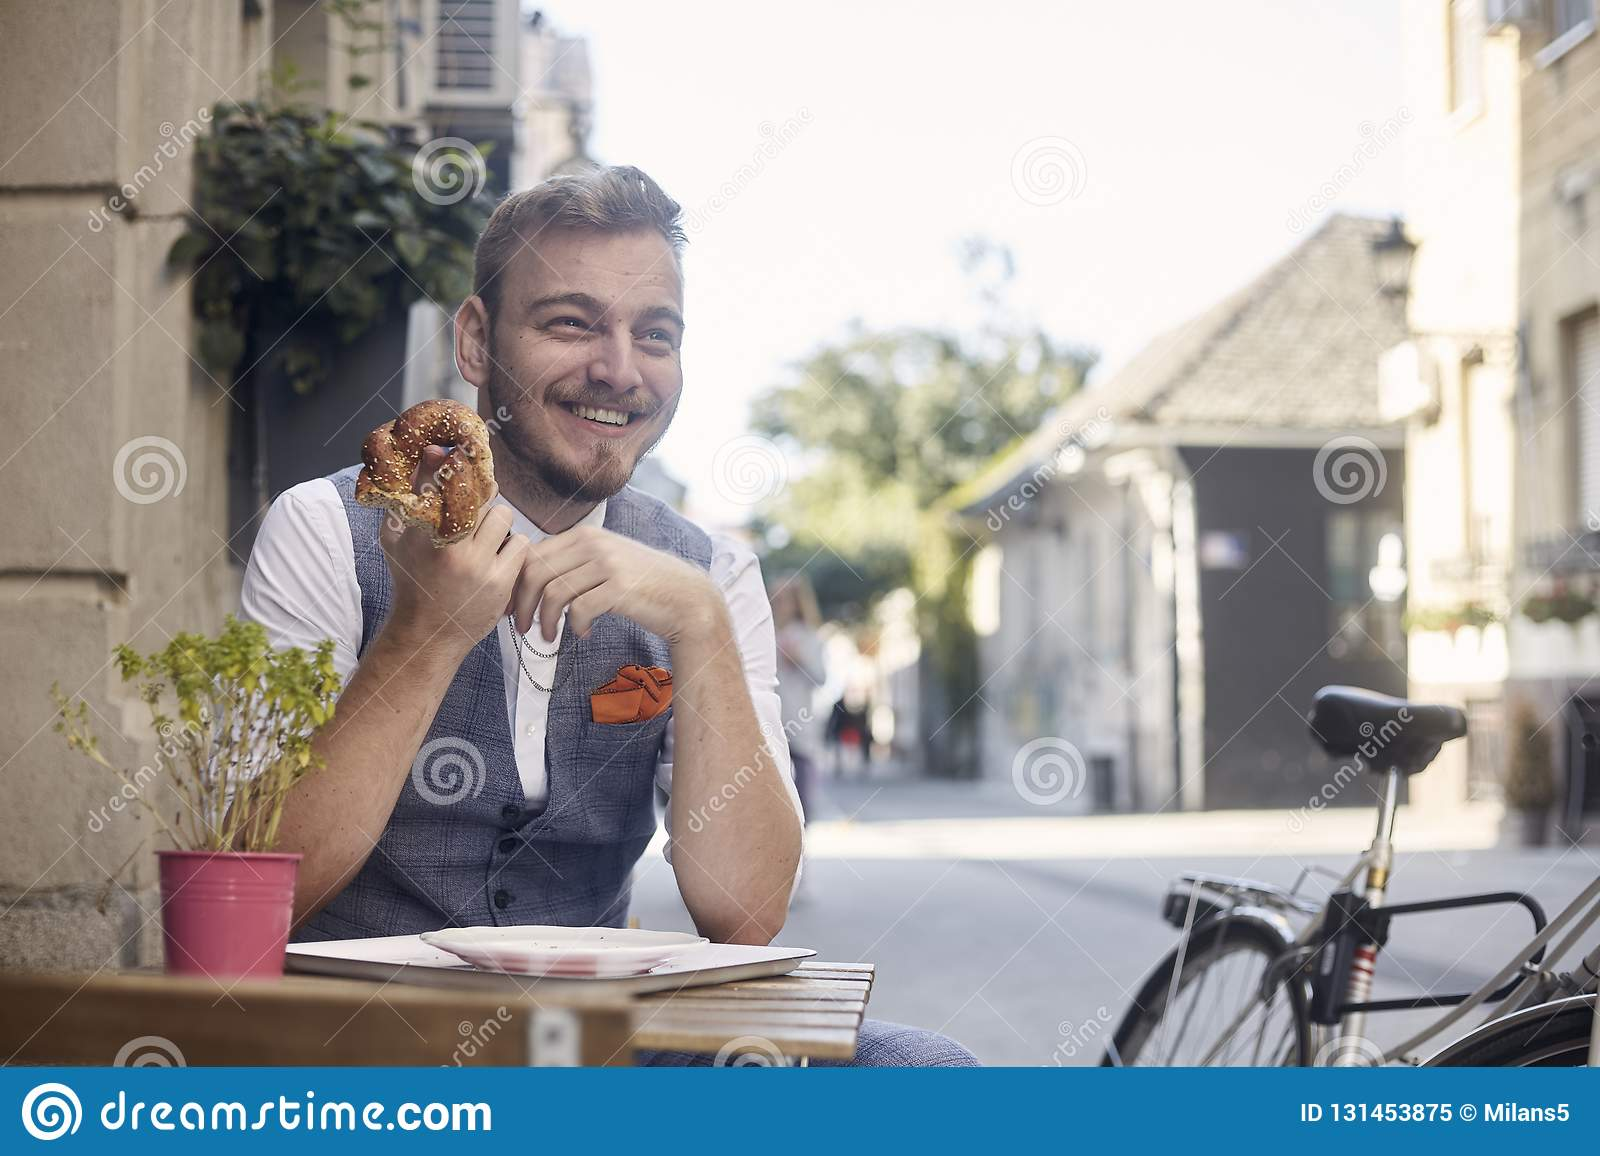 One young smiling man, 20-29 years old, wearing hipster suit, siting on street, eating pretzel in front of bakery outdoors. acting